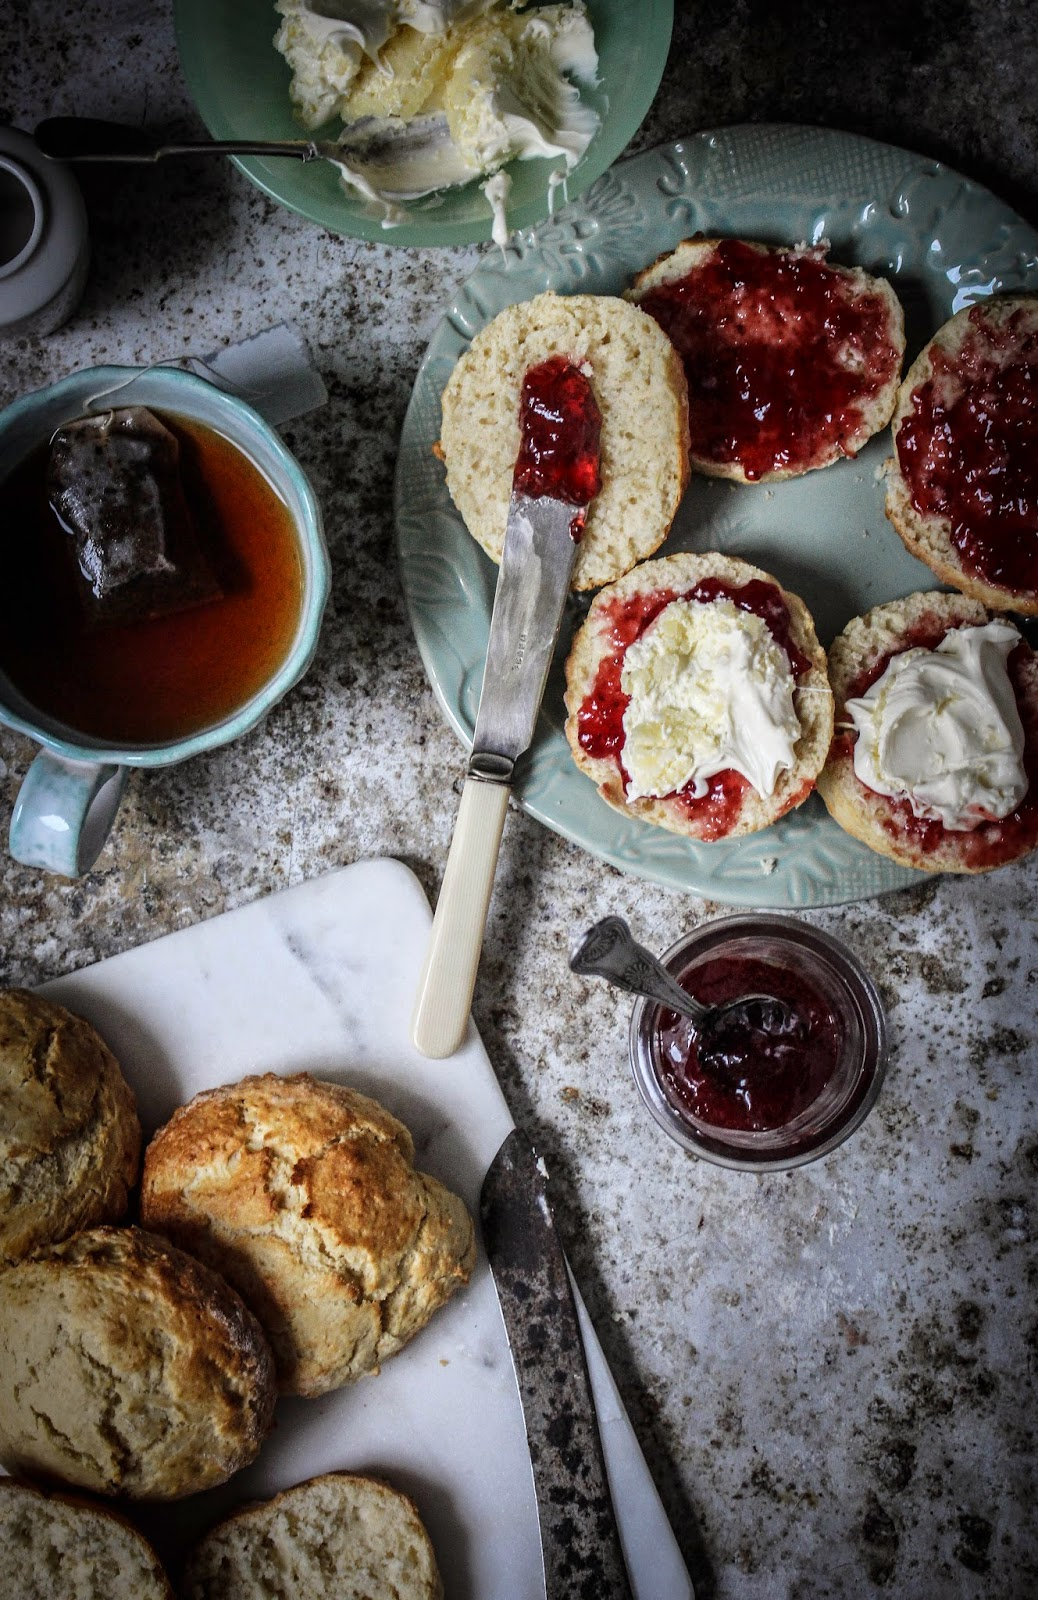 Fall Leve Wallpapers Devon Cream Tea Traditional English Scones With Cream And